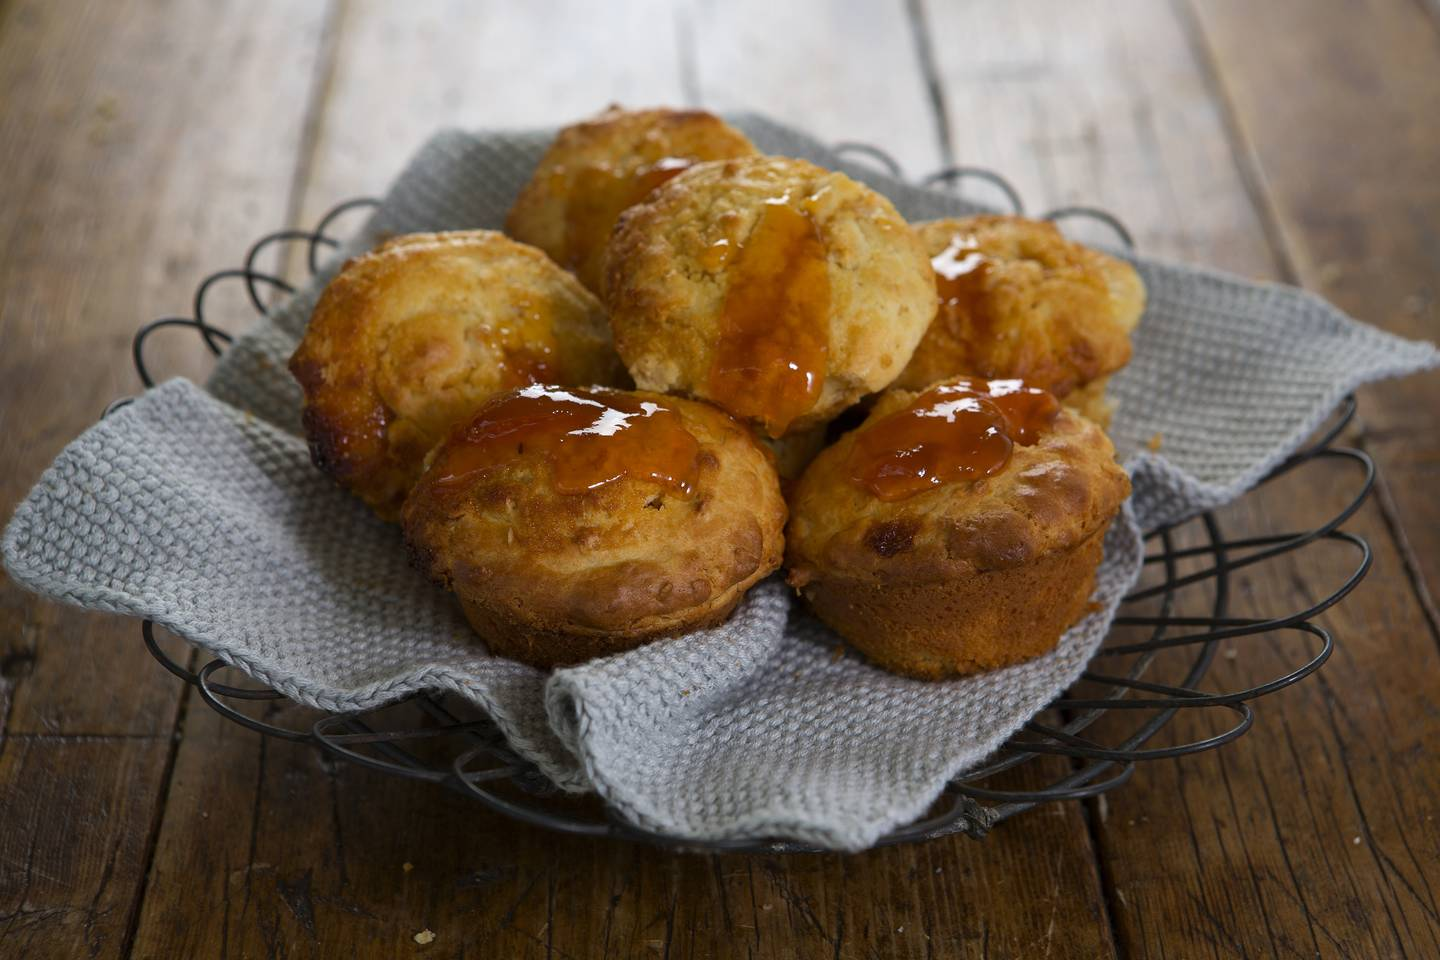 Apricot jam oat and yoghurt muffins